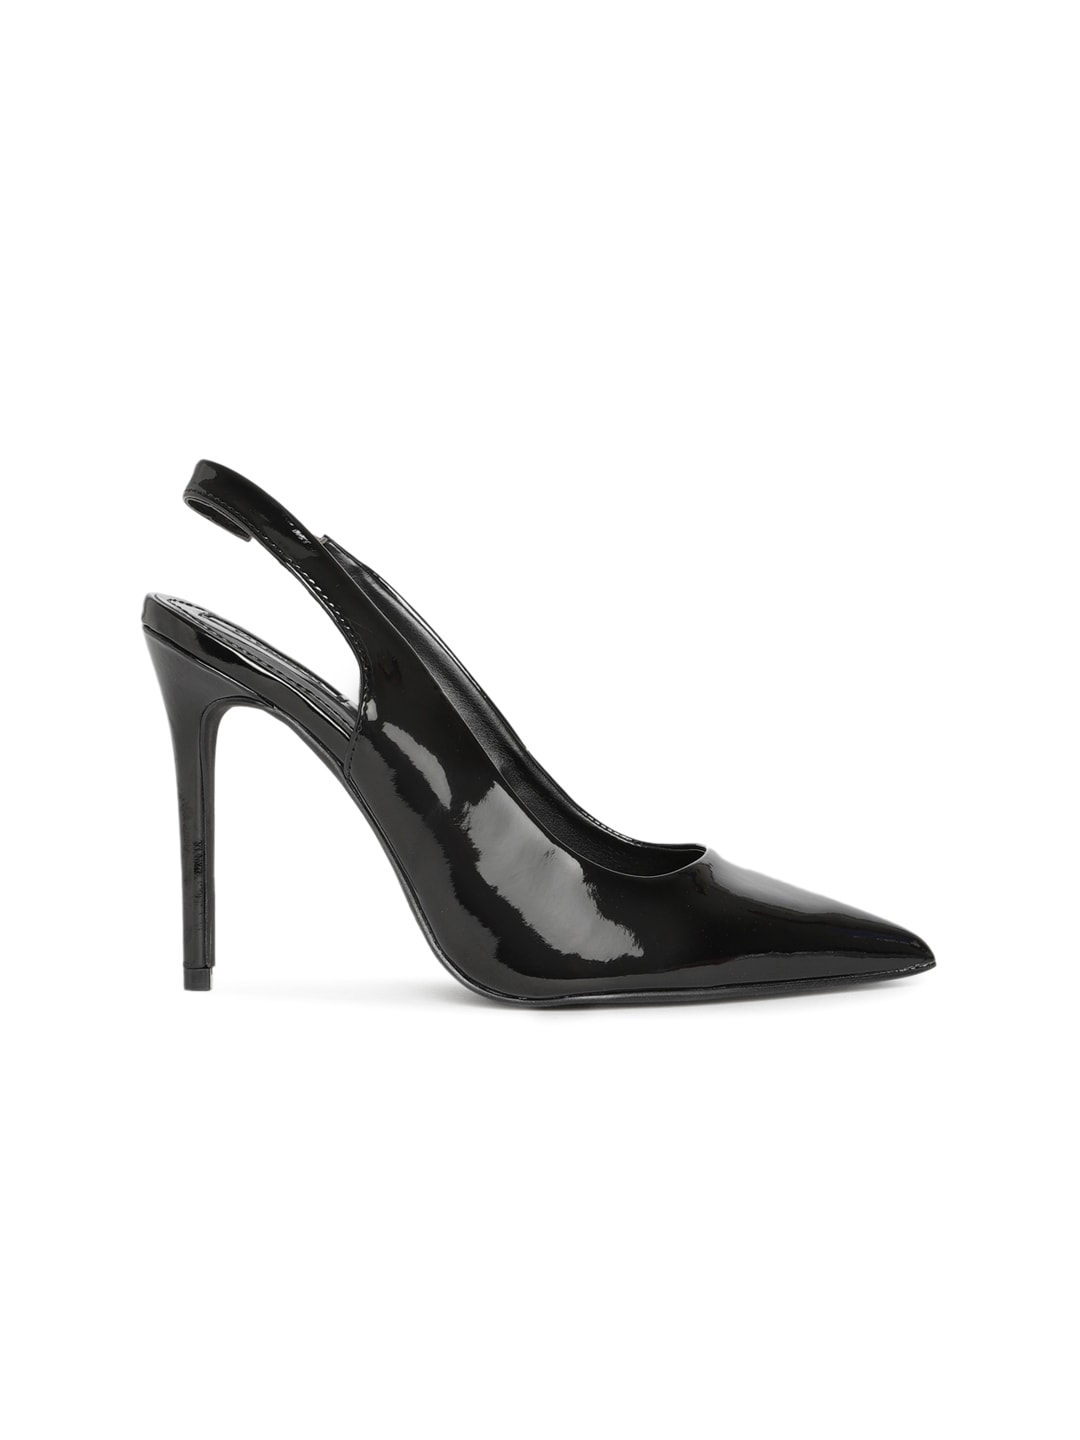 FOREVER 21 Women Black Solid Pumps